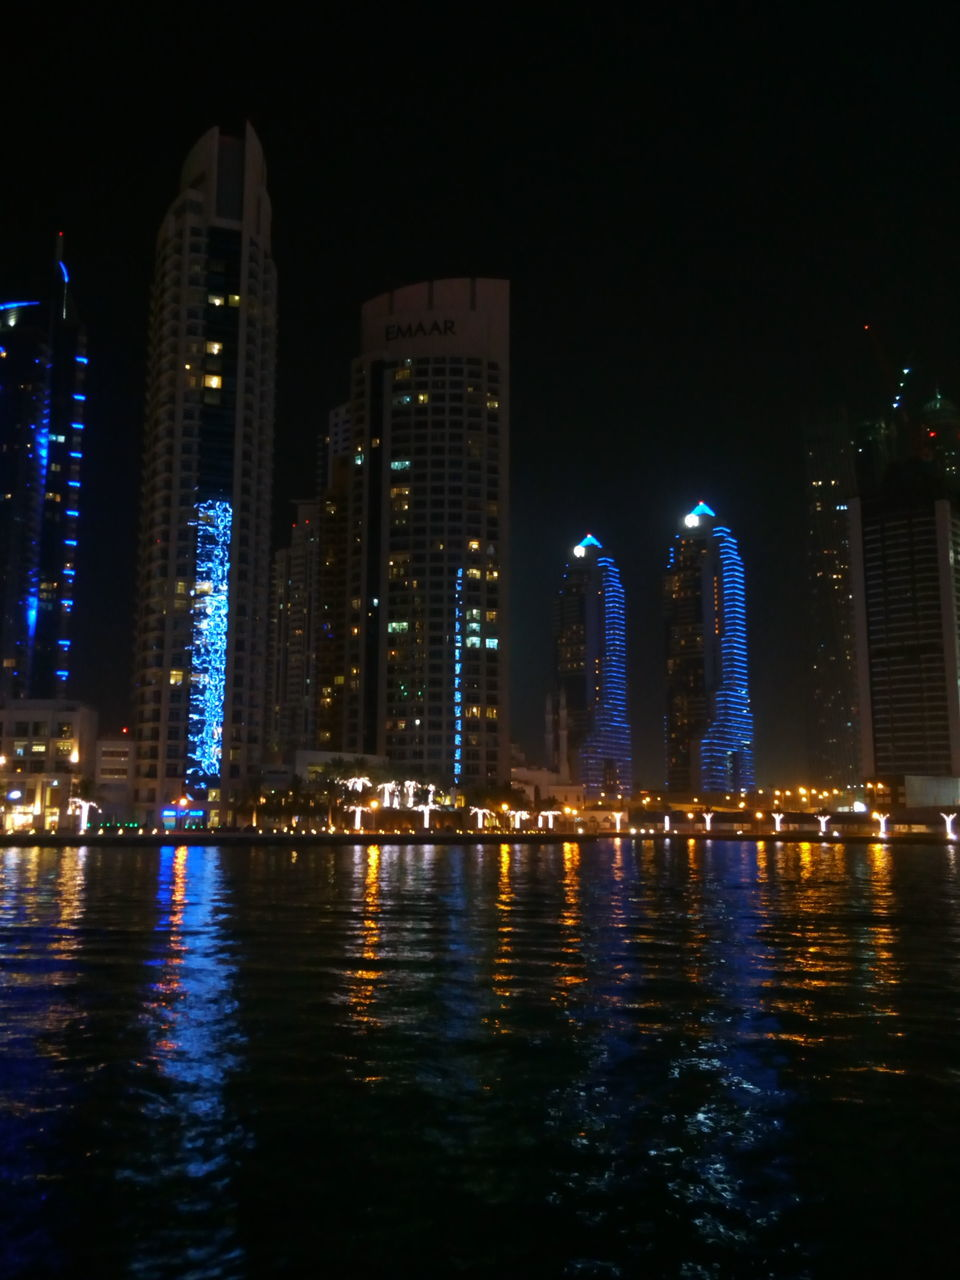 illuminated, night, architecture, built structure, building exterior, water, waterfront, reflection, travel destinations, tourism, city, no people, skyscraper, outdoors, sky, cityscape